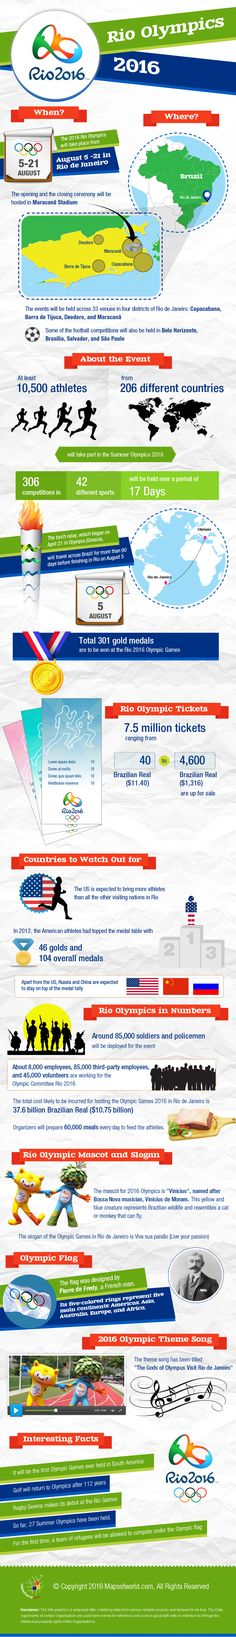 Explore amazing Rio 2016 Olympics Infographic with interesting facts - all the important 2016 Olympics facts and figures, including sports, Olympic venues and competitors. Olympics Facts, Rio Olympics 2016, Summer Olympics, Olympic Idea, Olympic Sports, Olympic Games, Office Olympics, Olympic Crafts, Olympic Venues